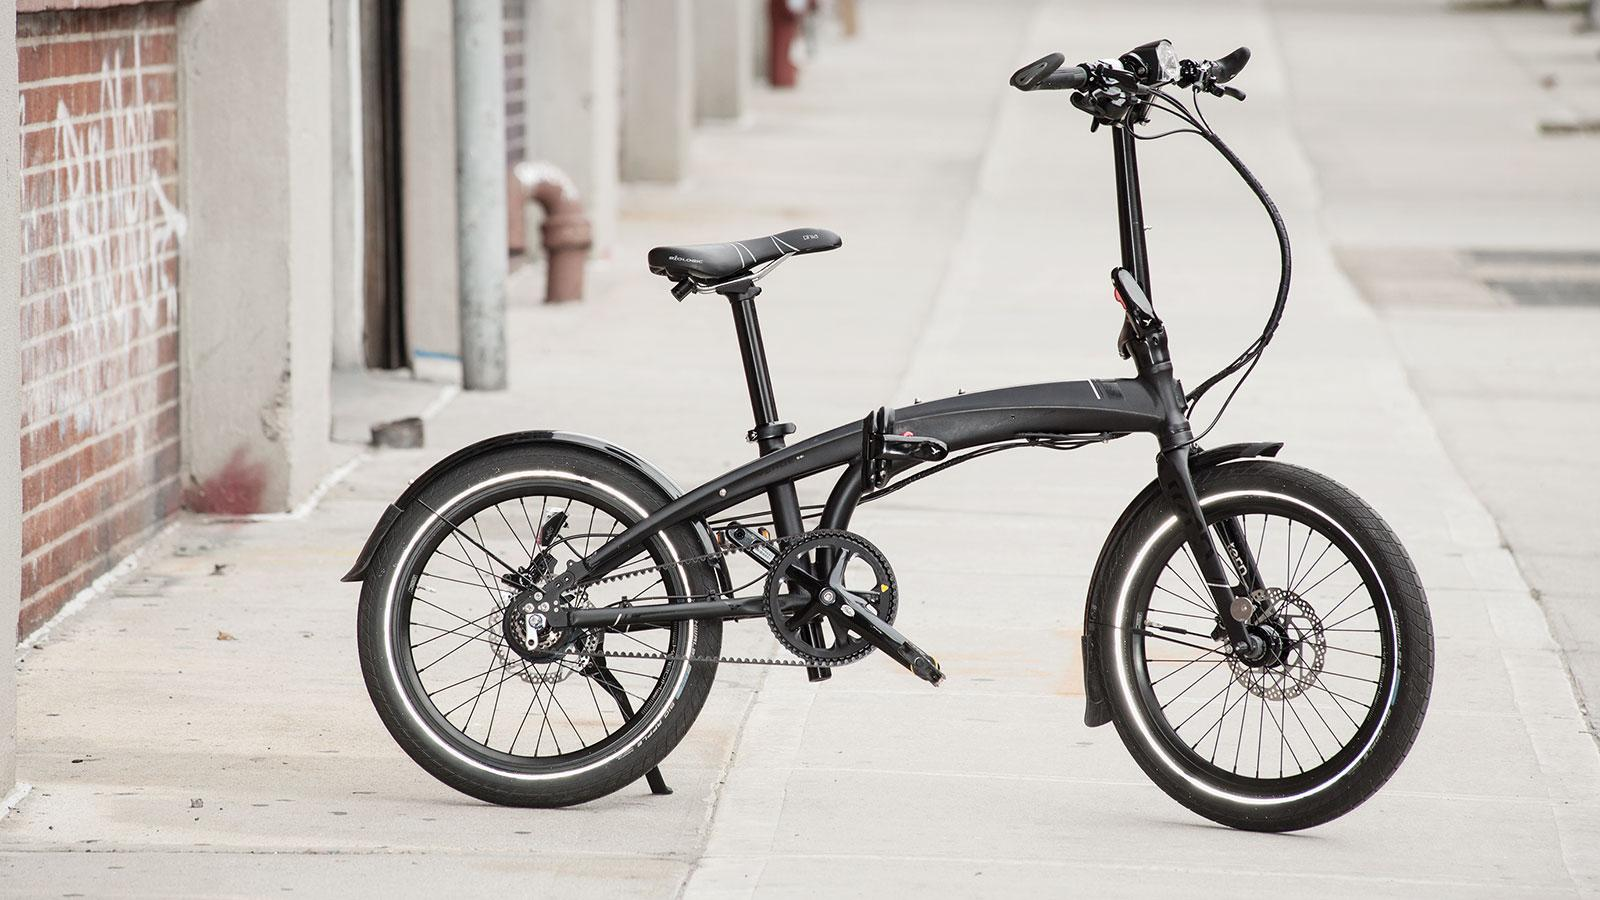 Tern Verge S8i Folding Bicycle